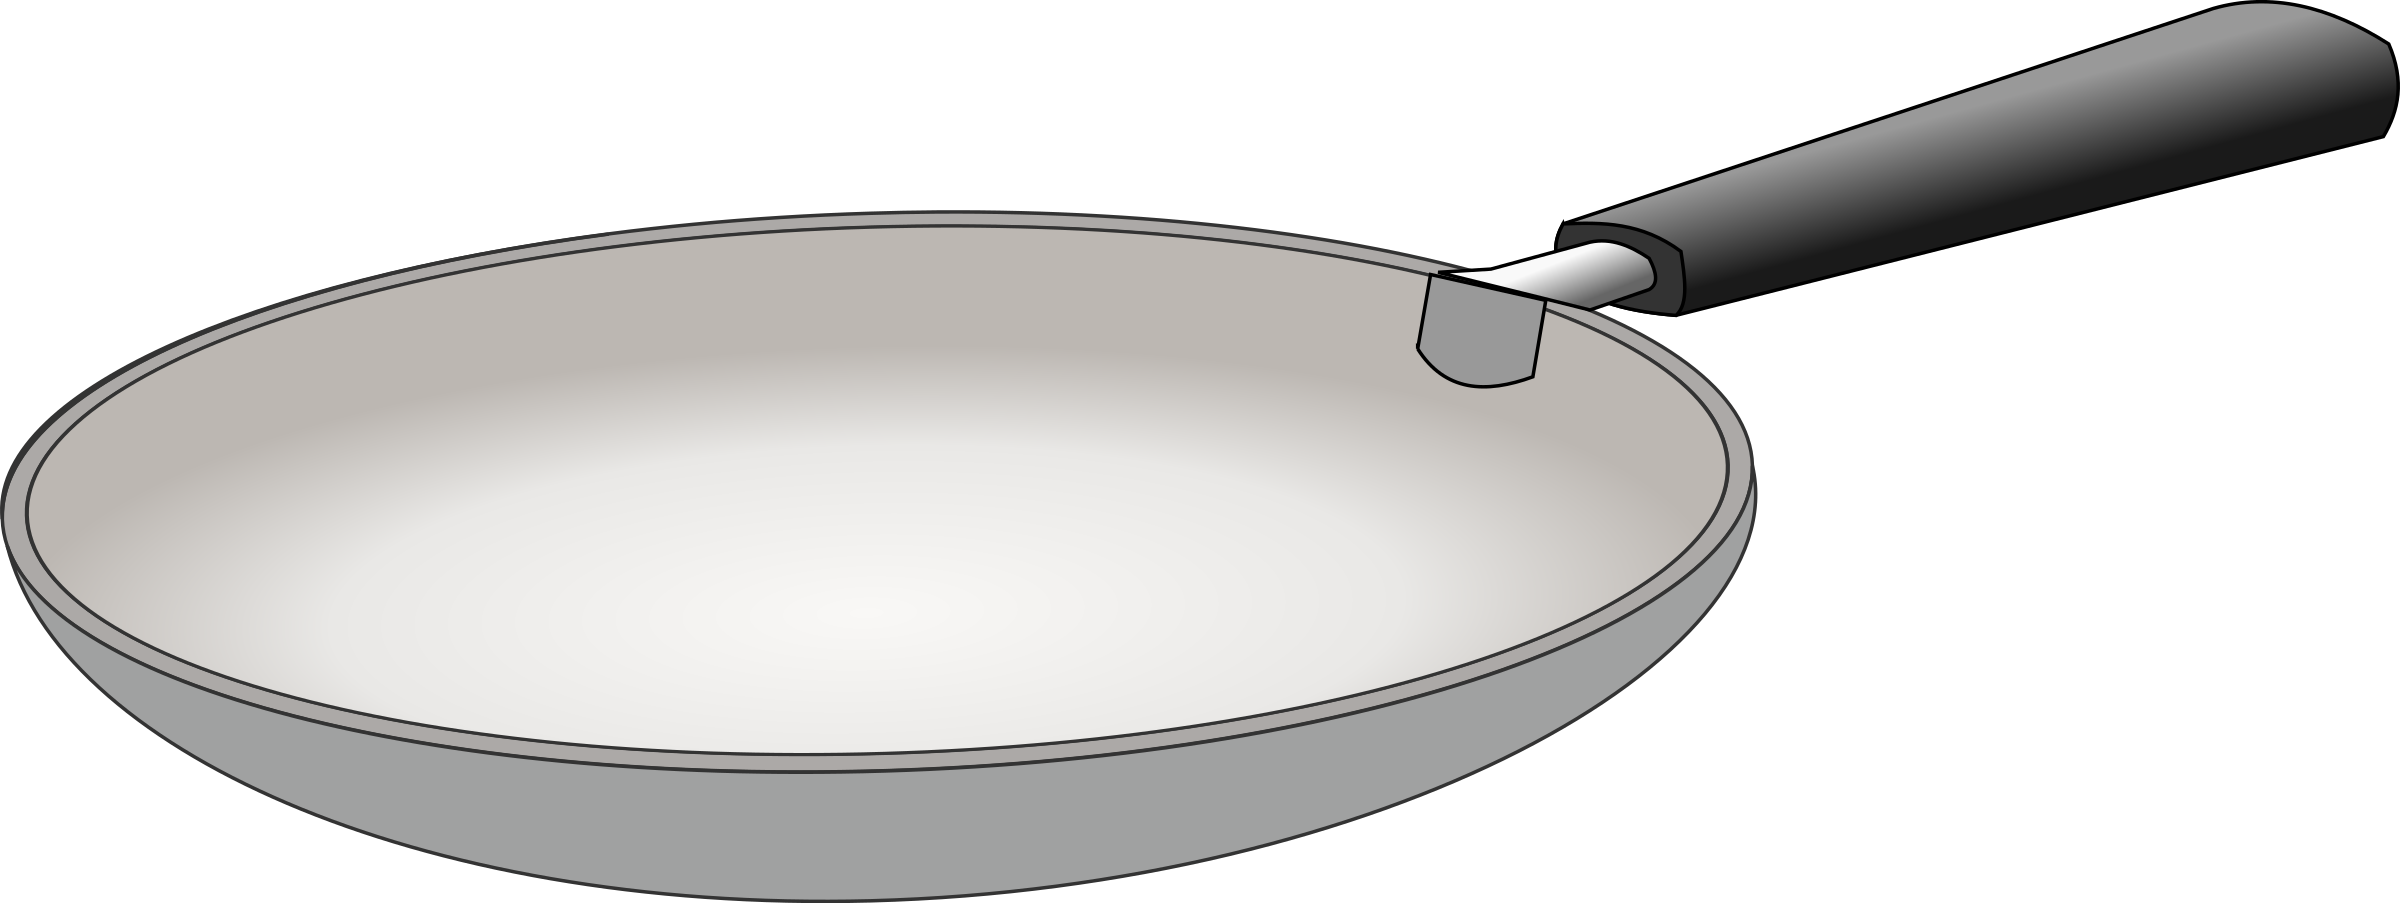 fries vector frying pan